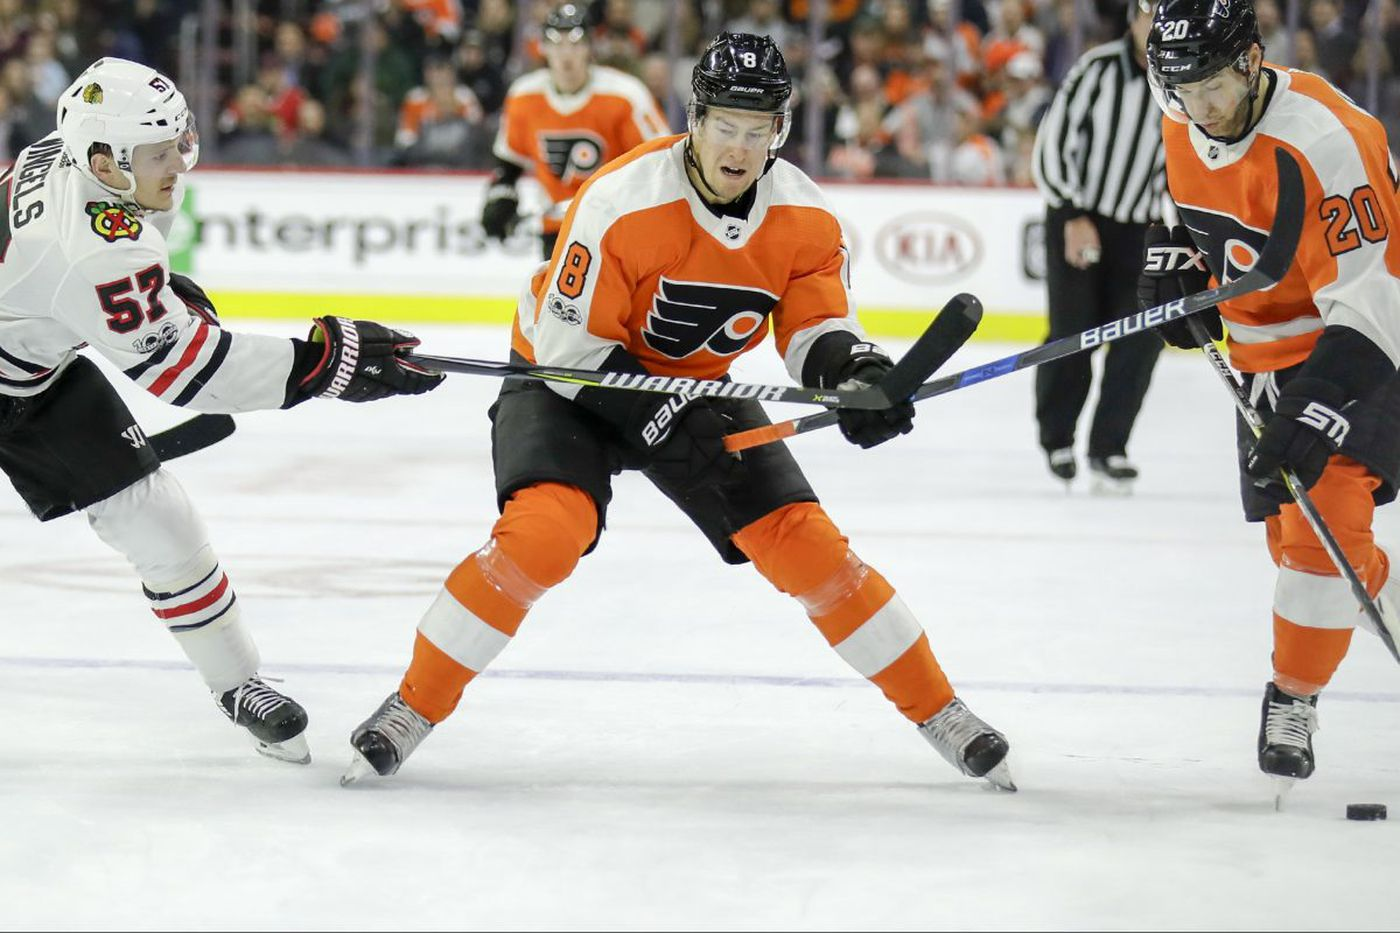 Five observations from Flyers' win, including young D's growth